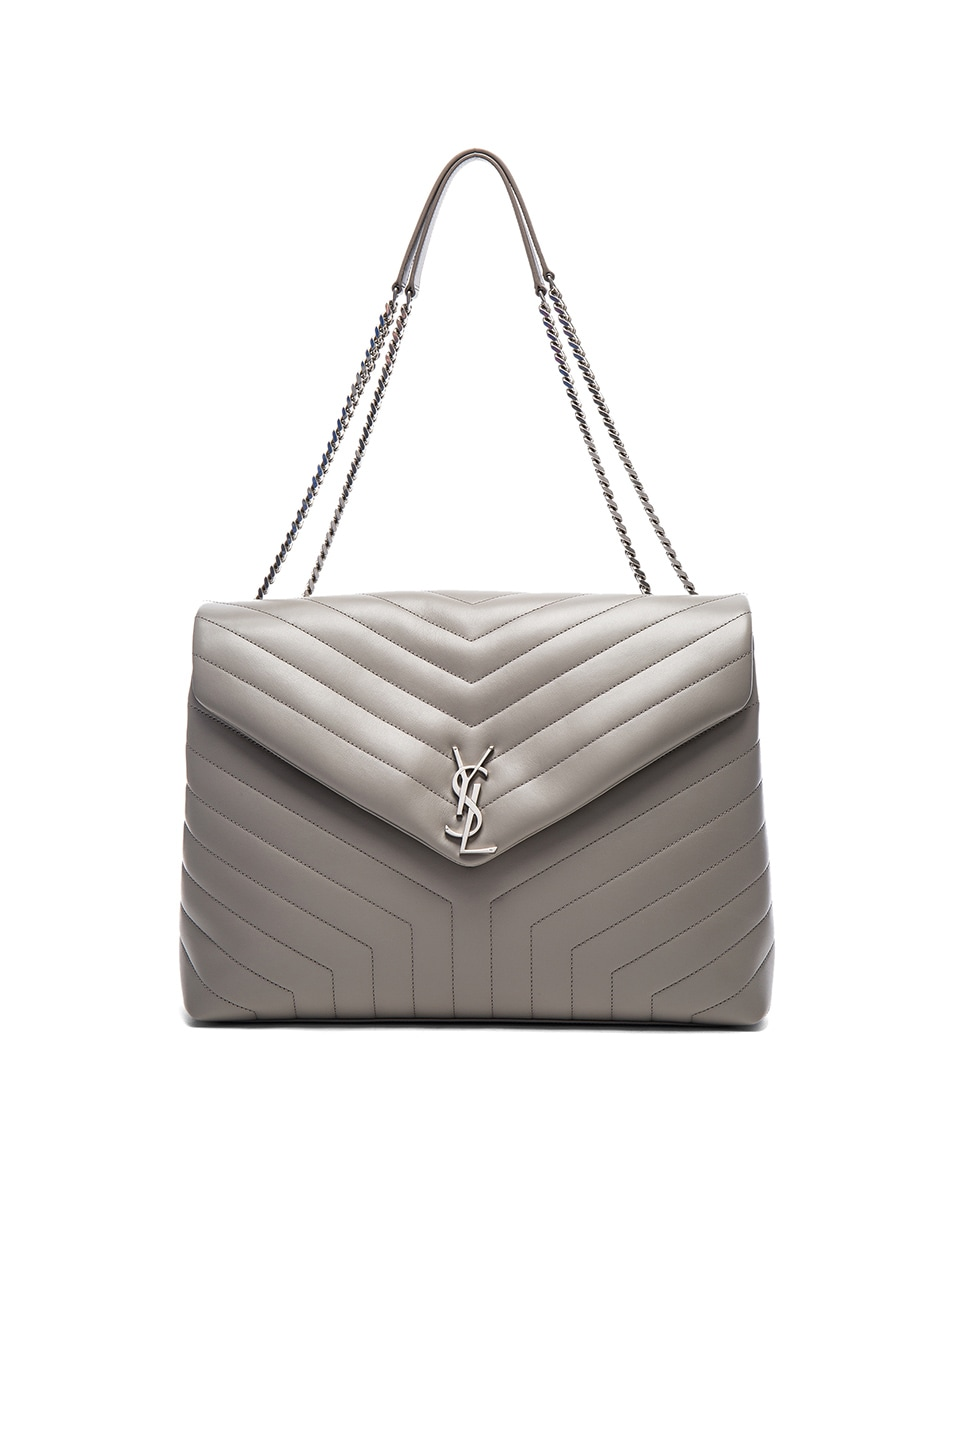 Image 1 of Saint Laurent Slouchy Large Monogramme Shoulder Bag in Pearl Grey